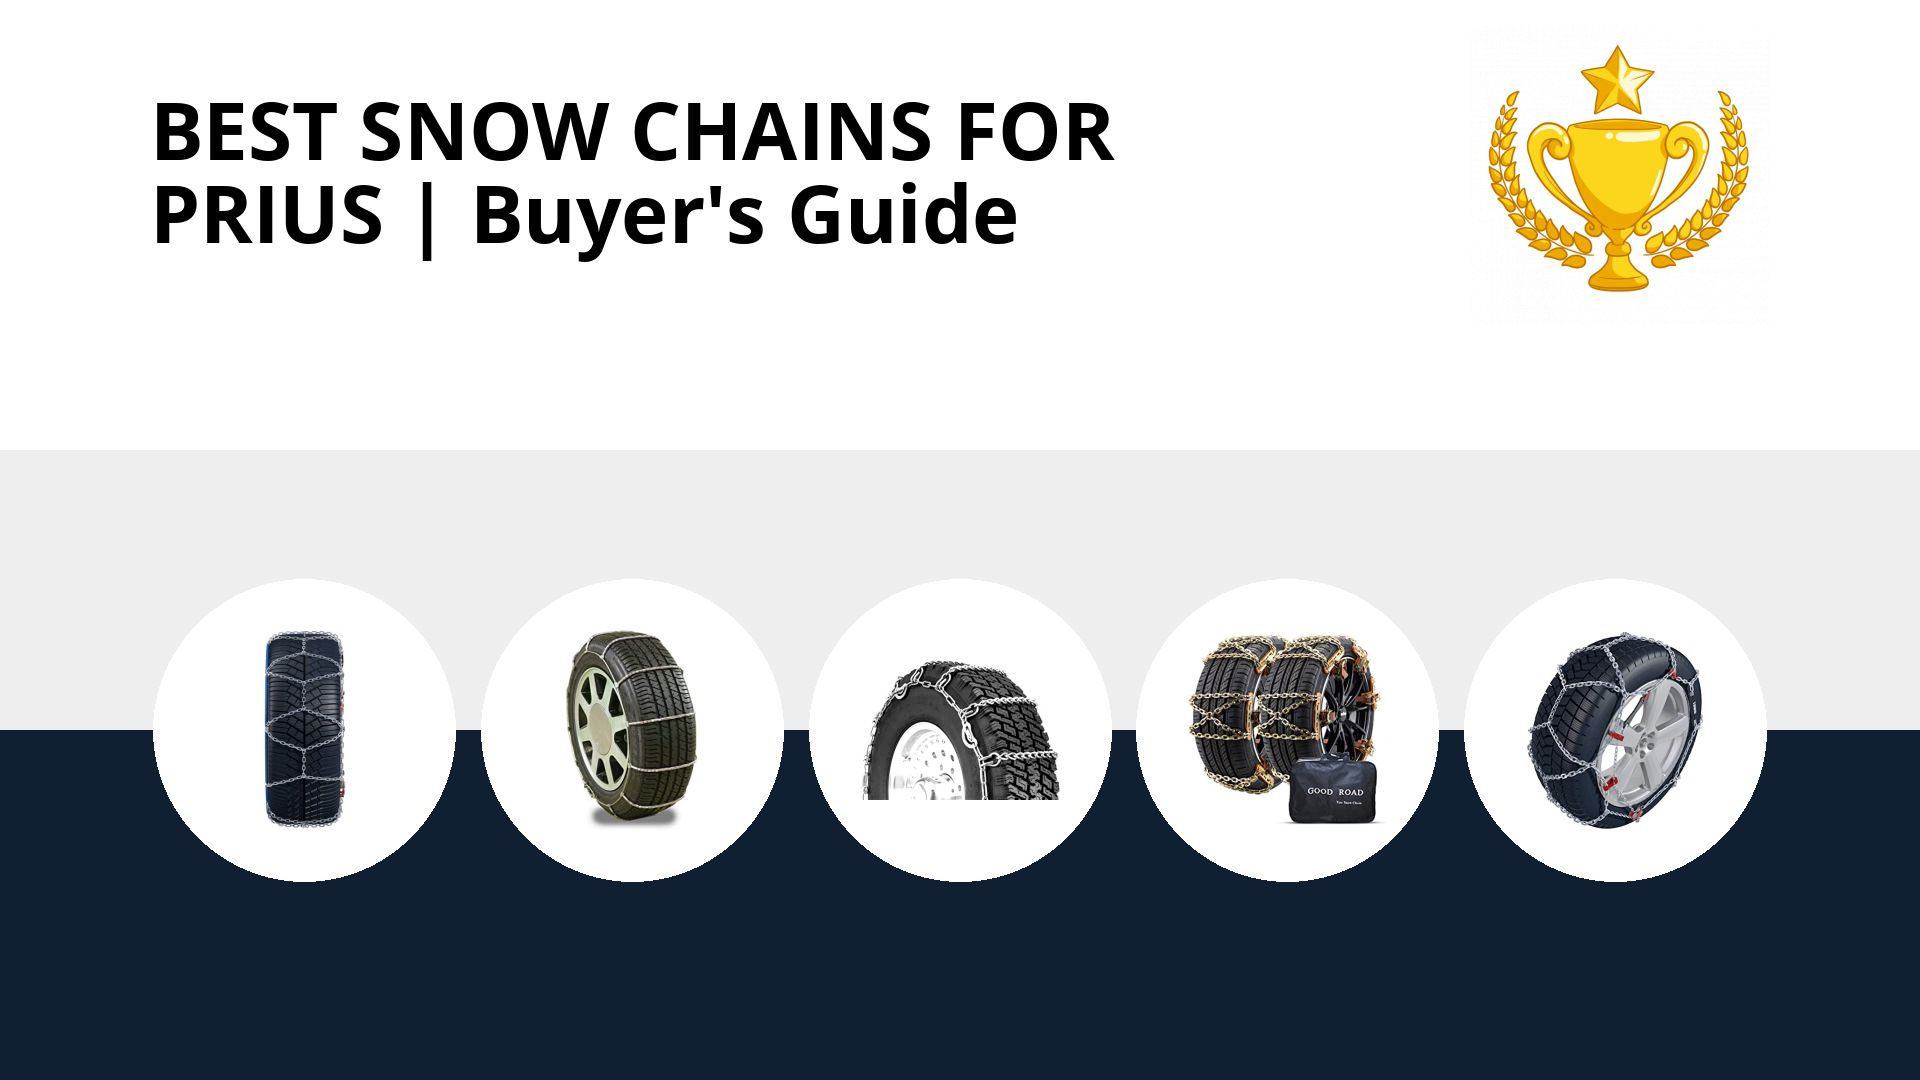 Best Snow Chains For Prius: image